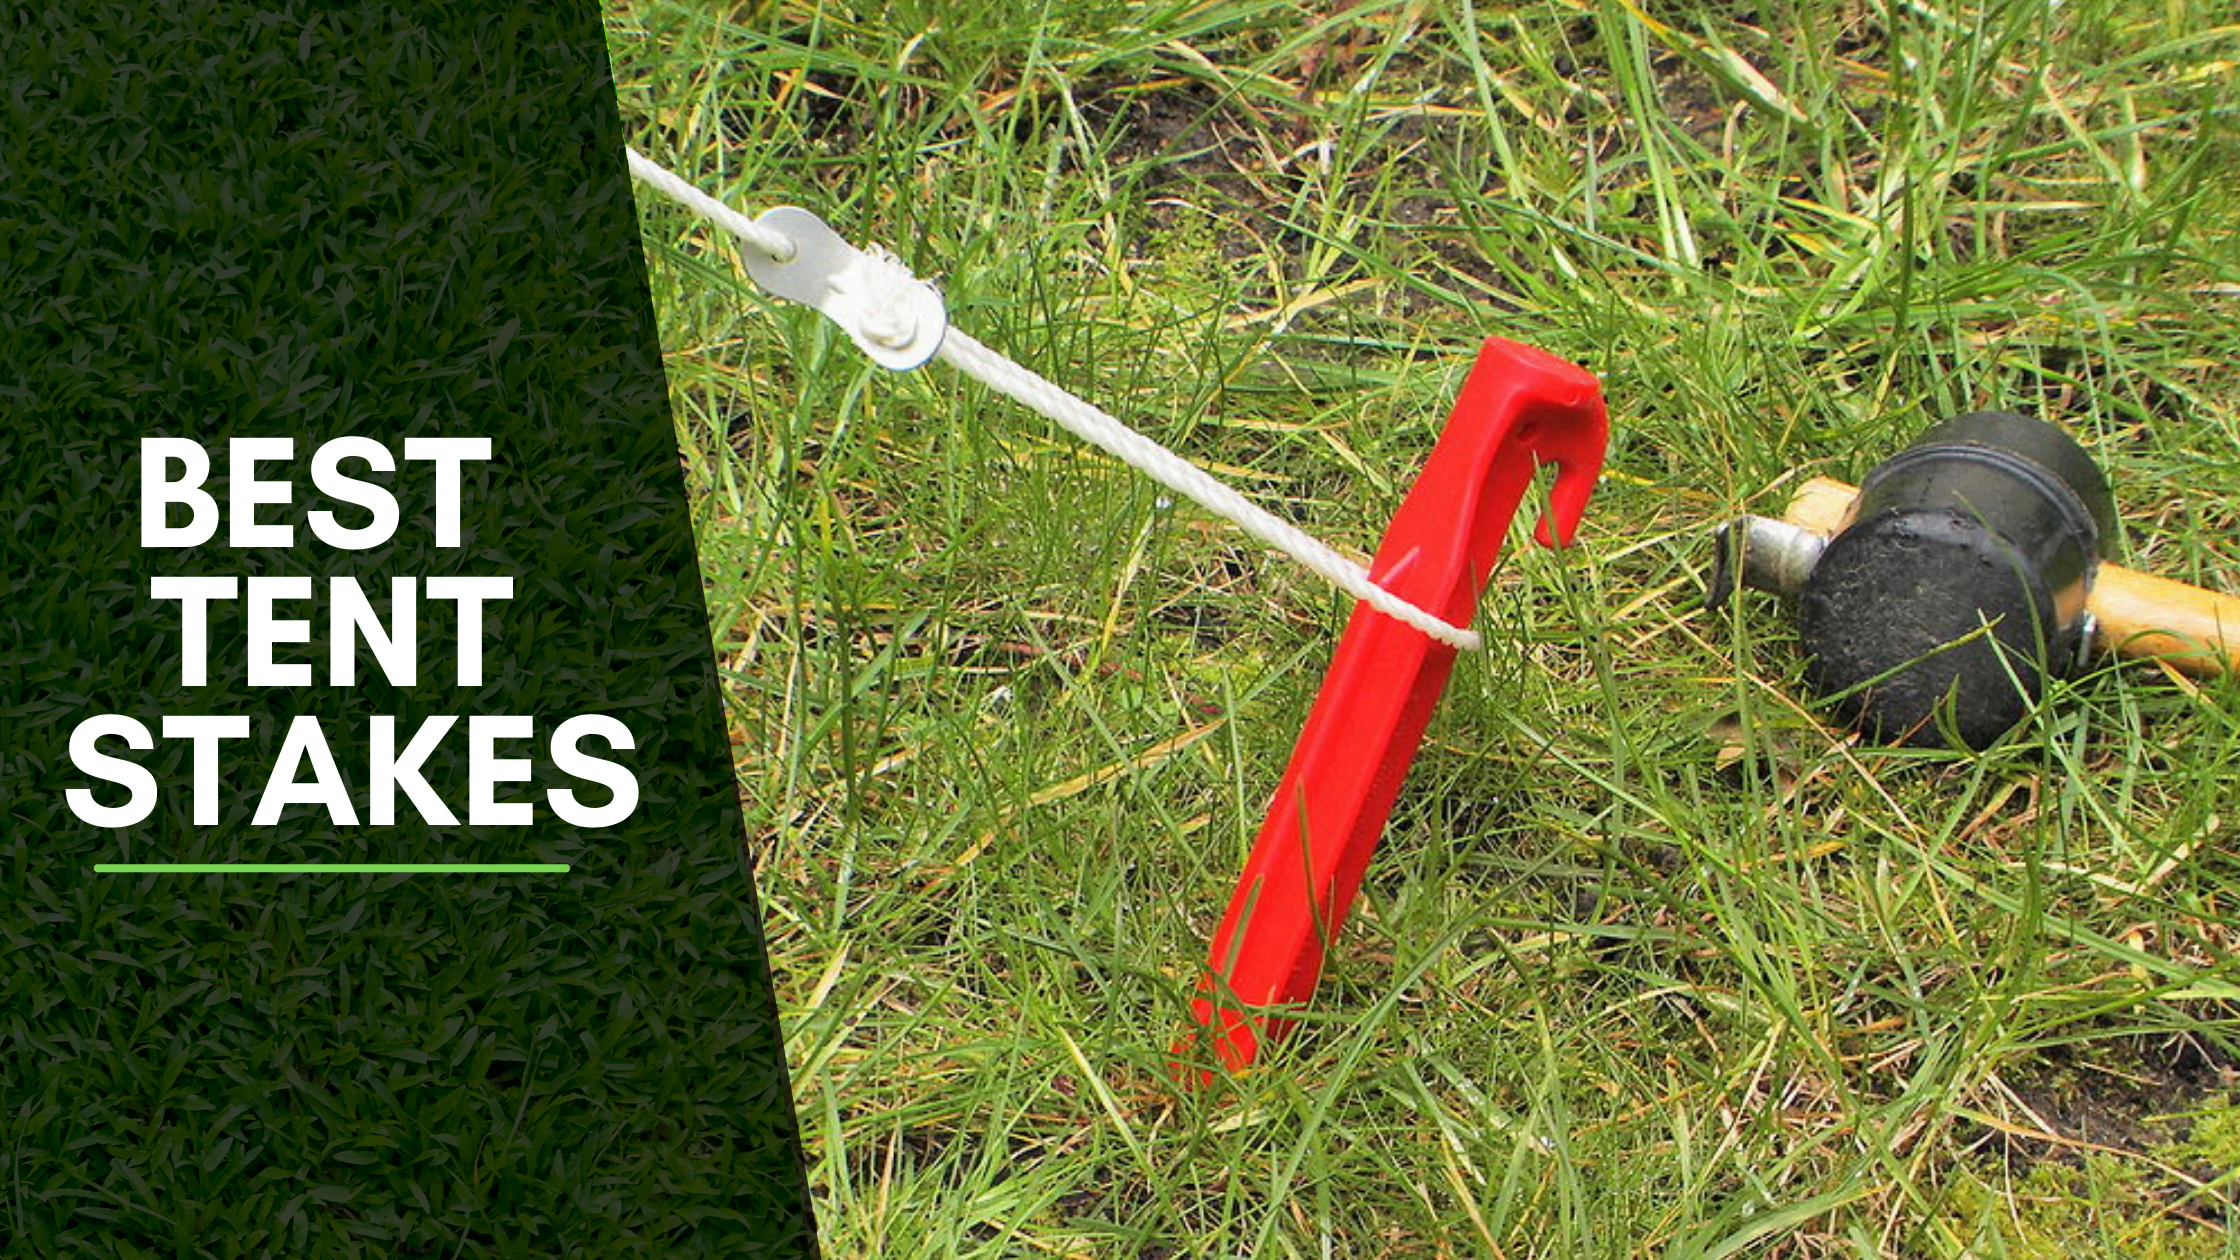 10 Best Tent Stakes 2021